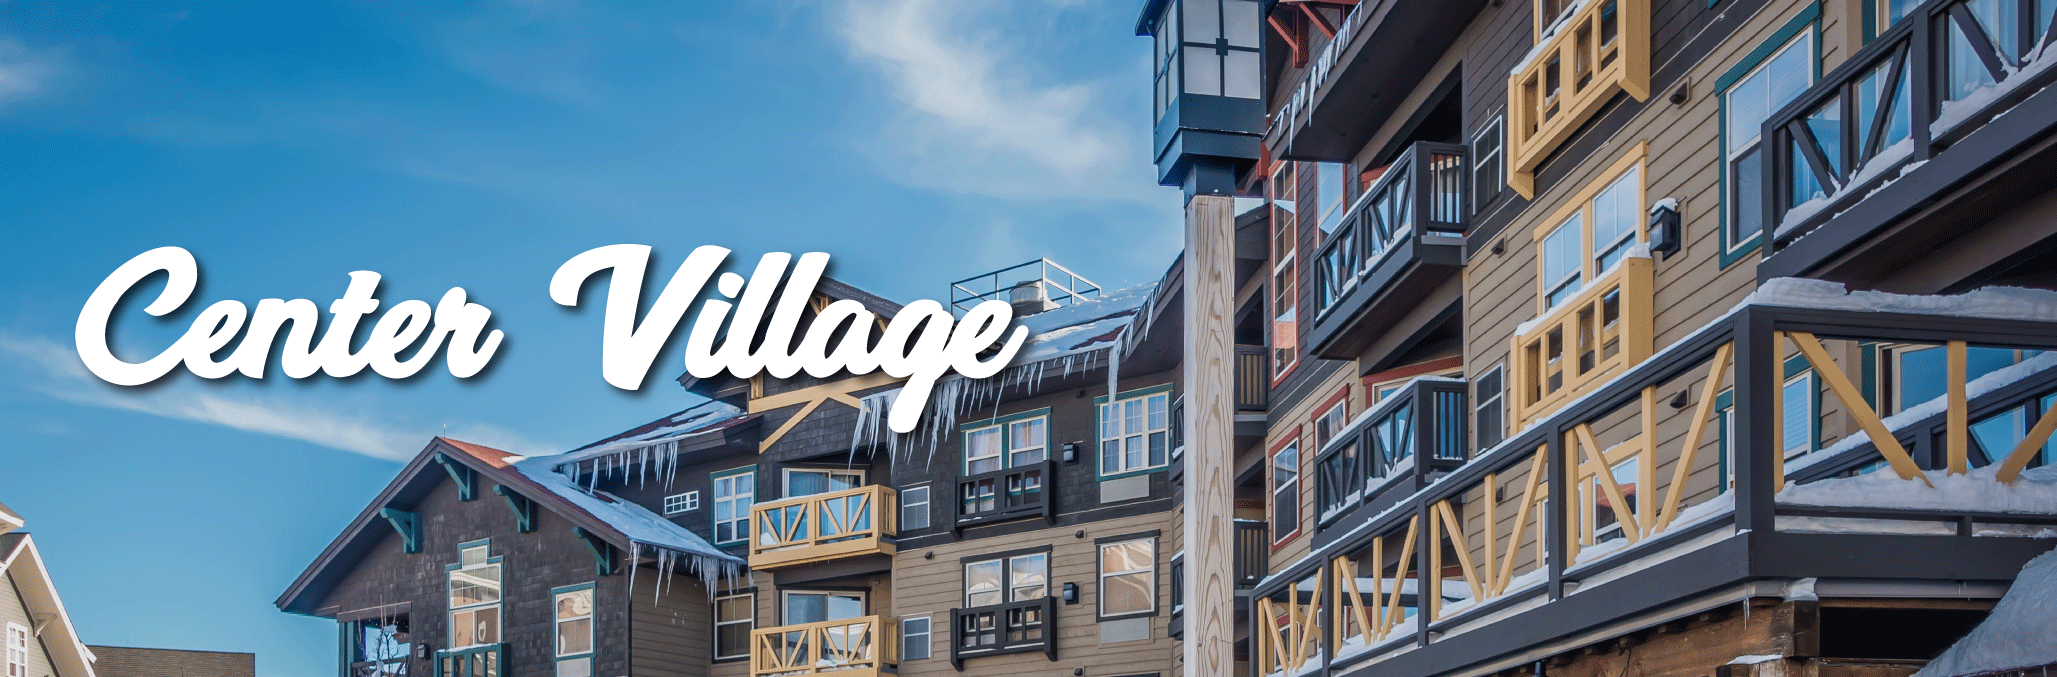 center village copper mountain slider